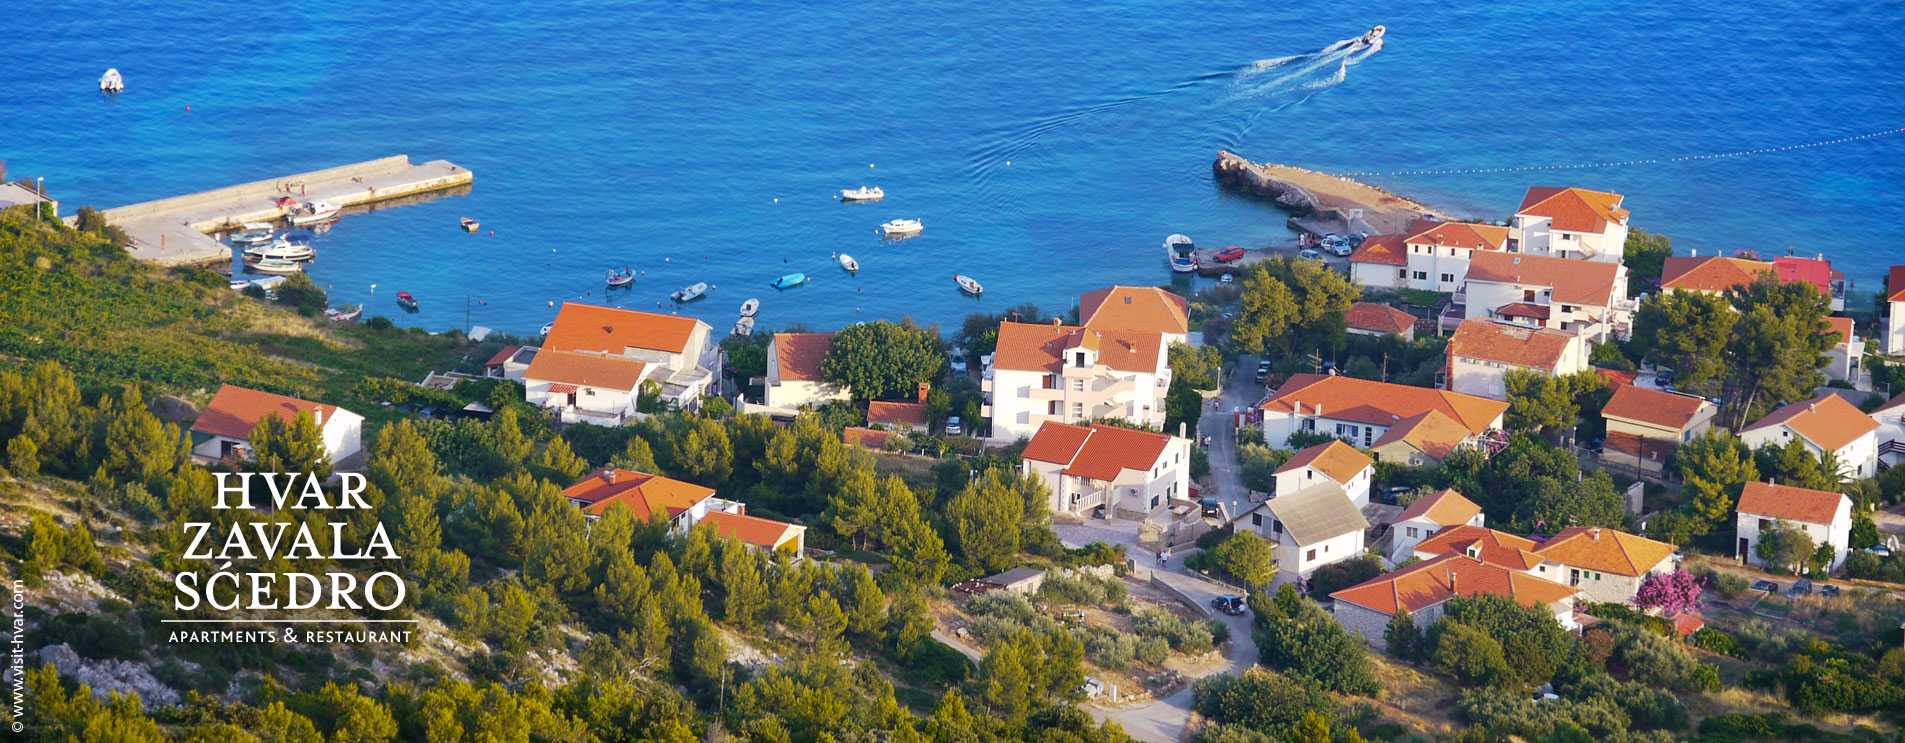 Discover Zavala on the south side of the island of Hvar